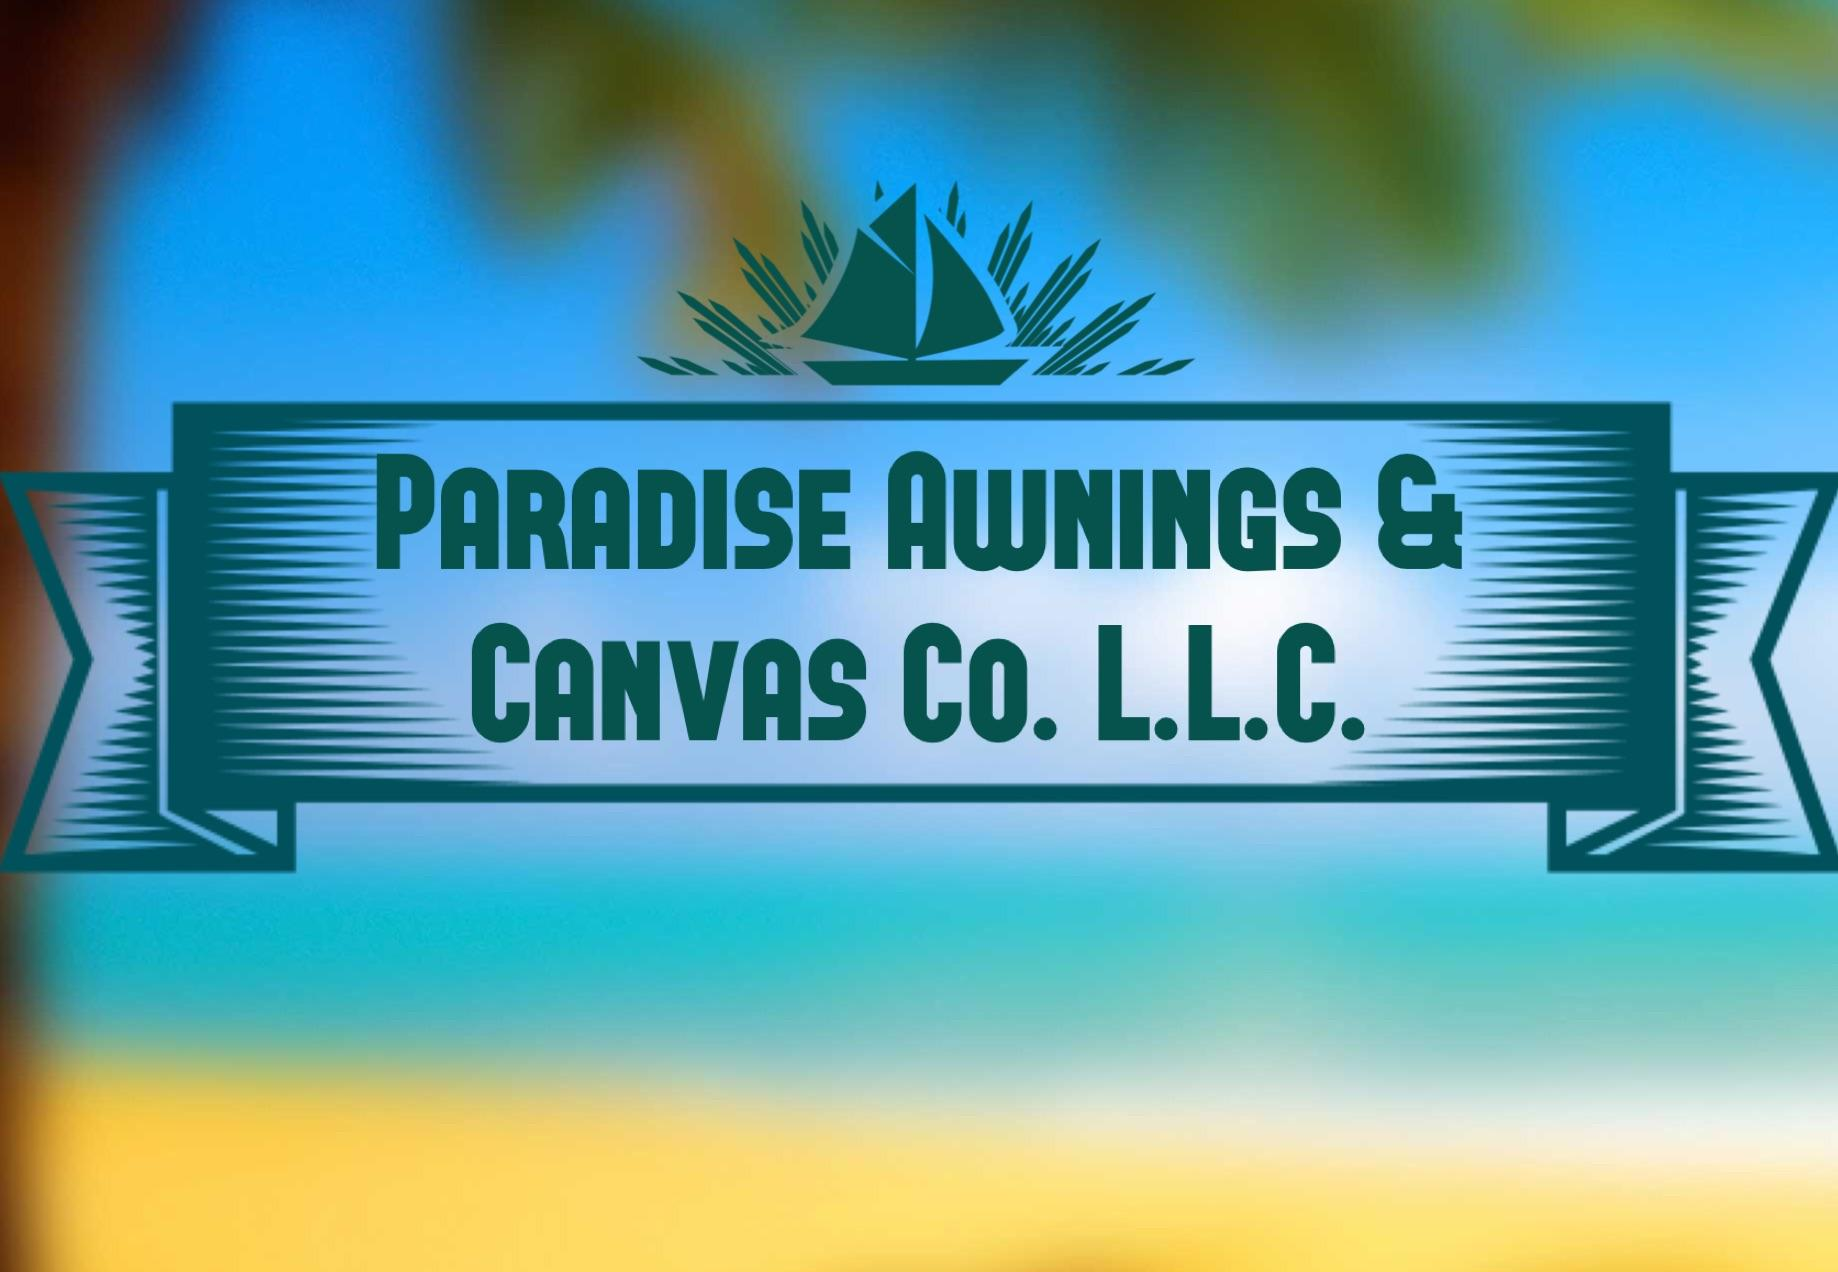 Paradise Awnings & Canvas Co. L.L.C image 2